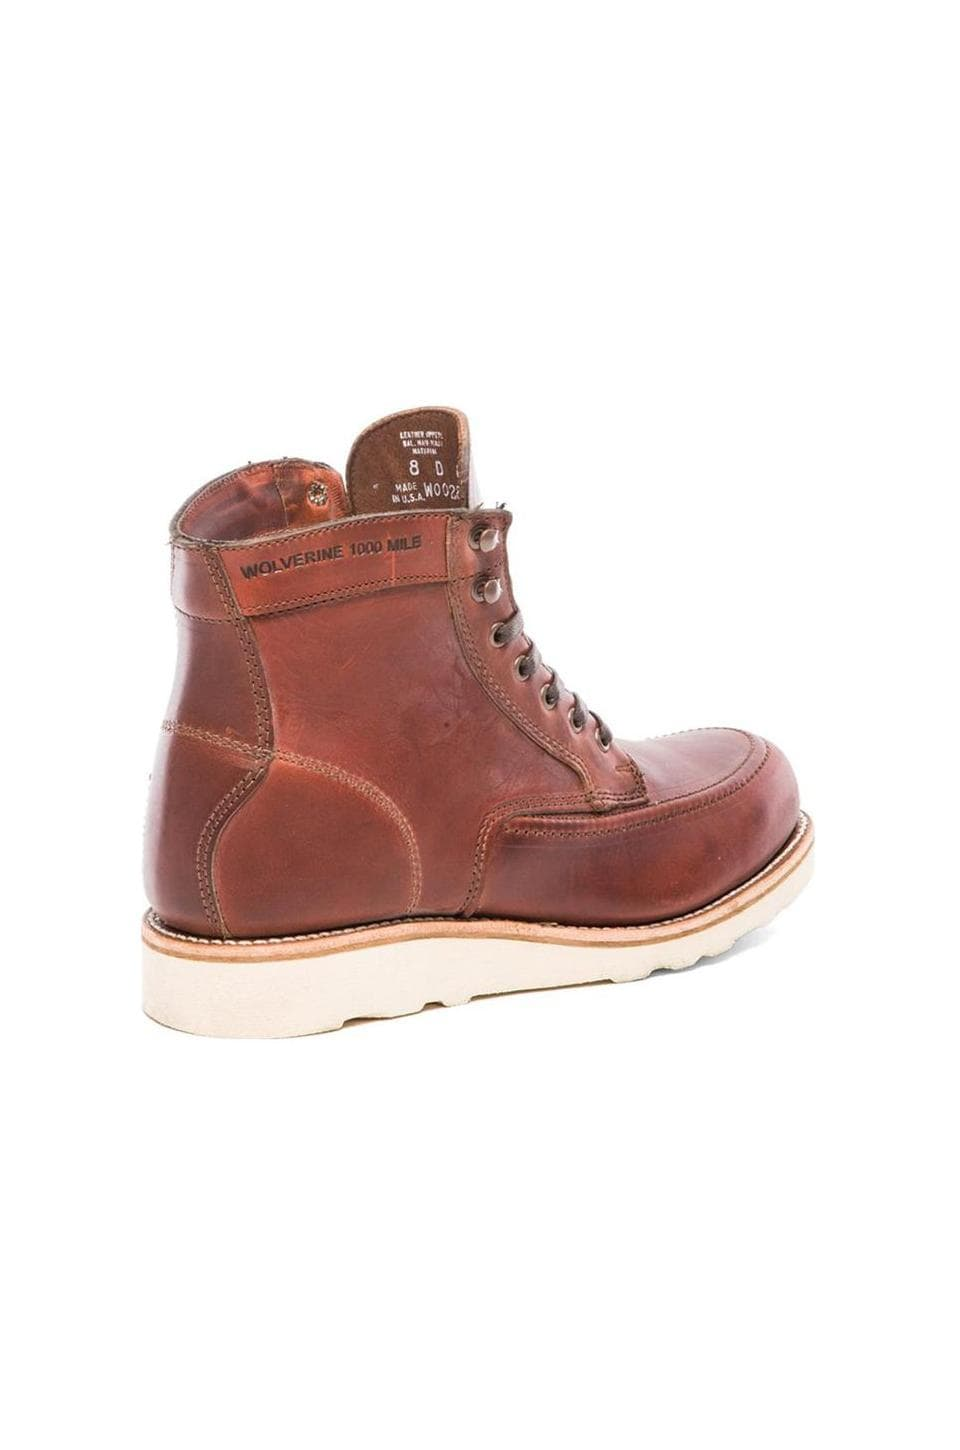 Wolverine 1000 Mile Emerson Boot in Rust